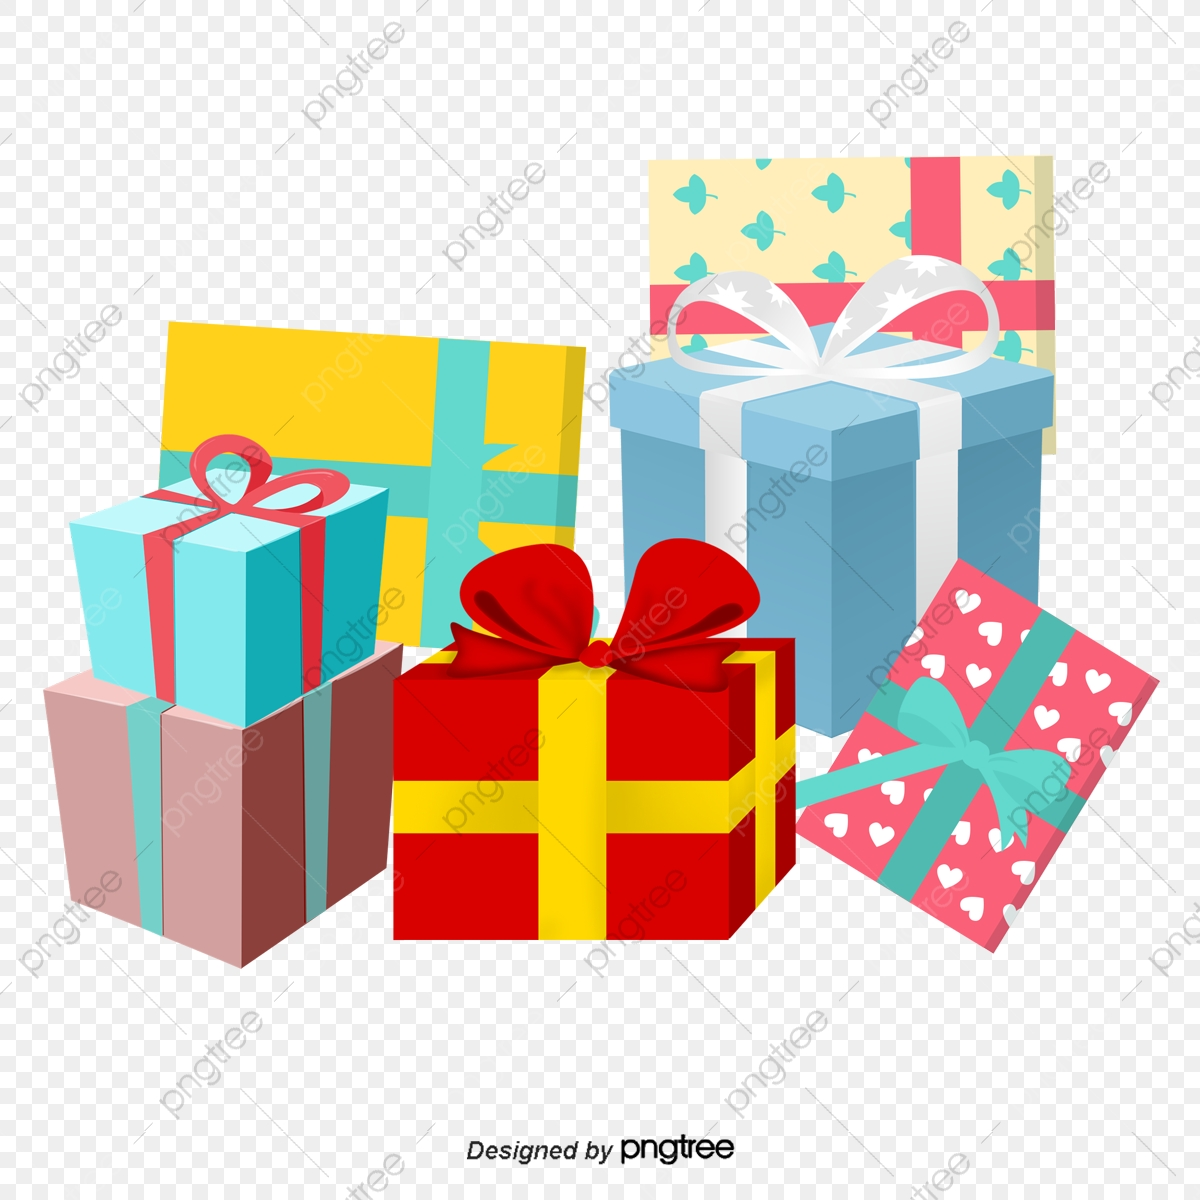 Gift Heap, Gift Clipart, Christmas Gifts, Gift Boxes PNG Transparent.